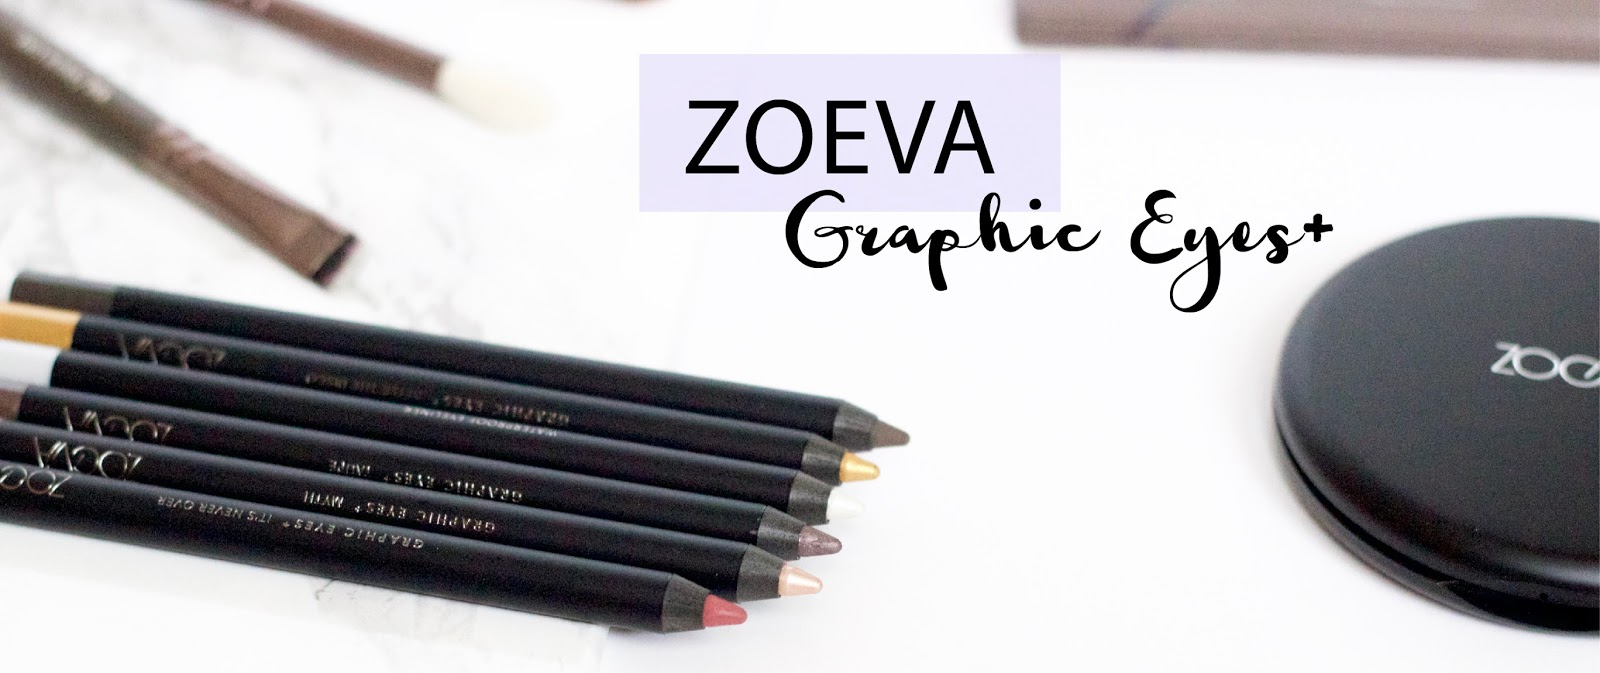 Zoeva Graphic Eyes Six New Shades* || FIRST IMPRESSION